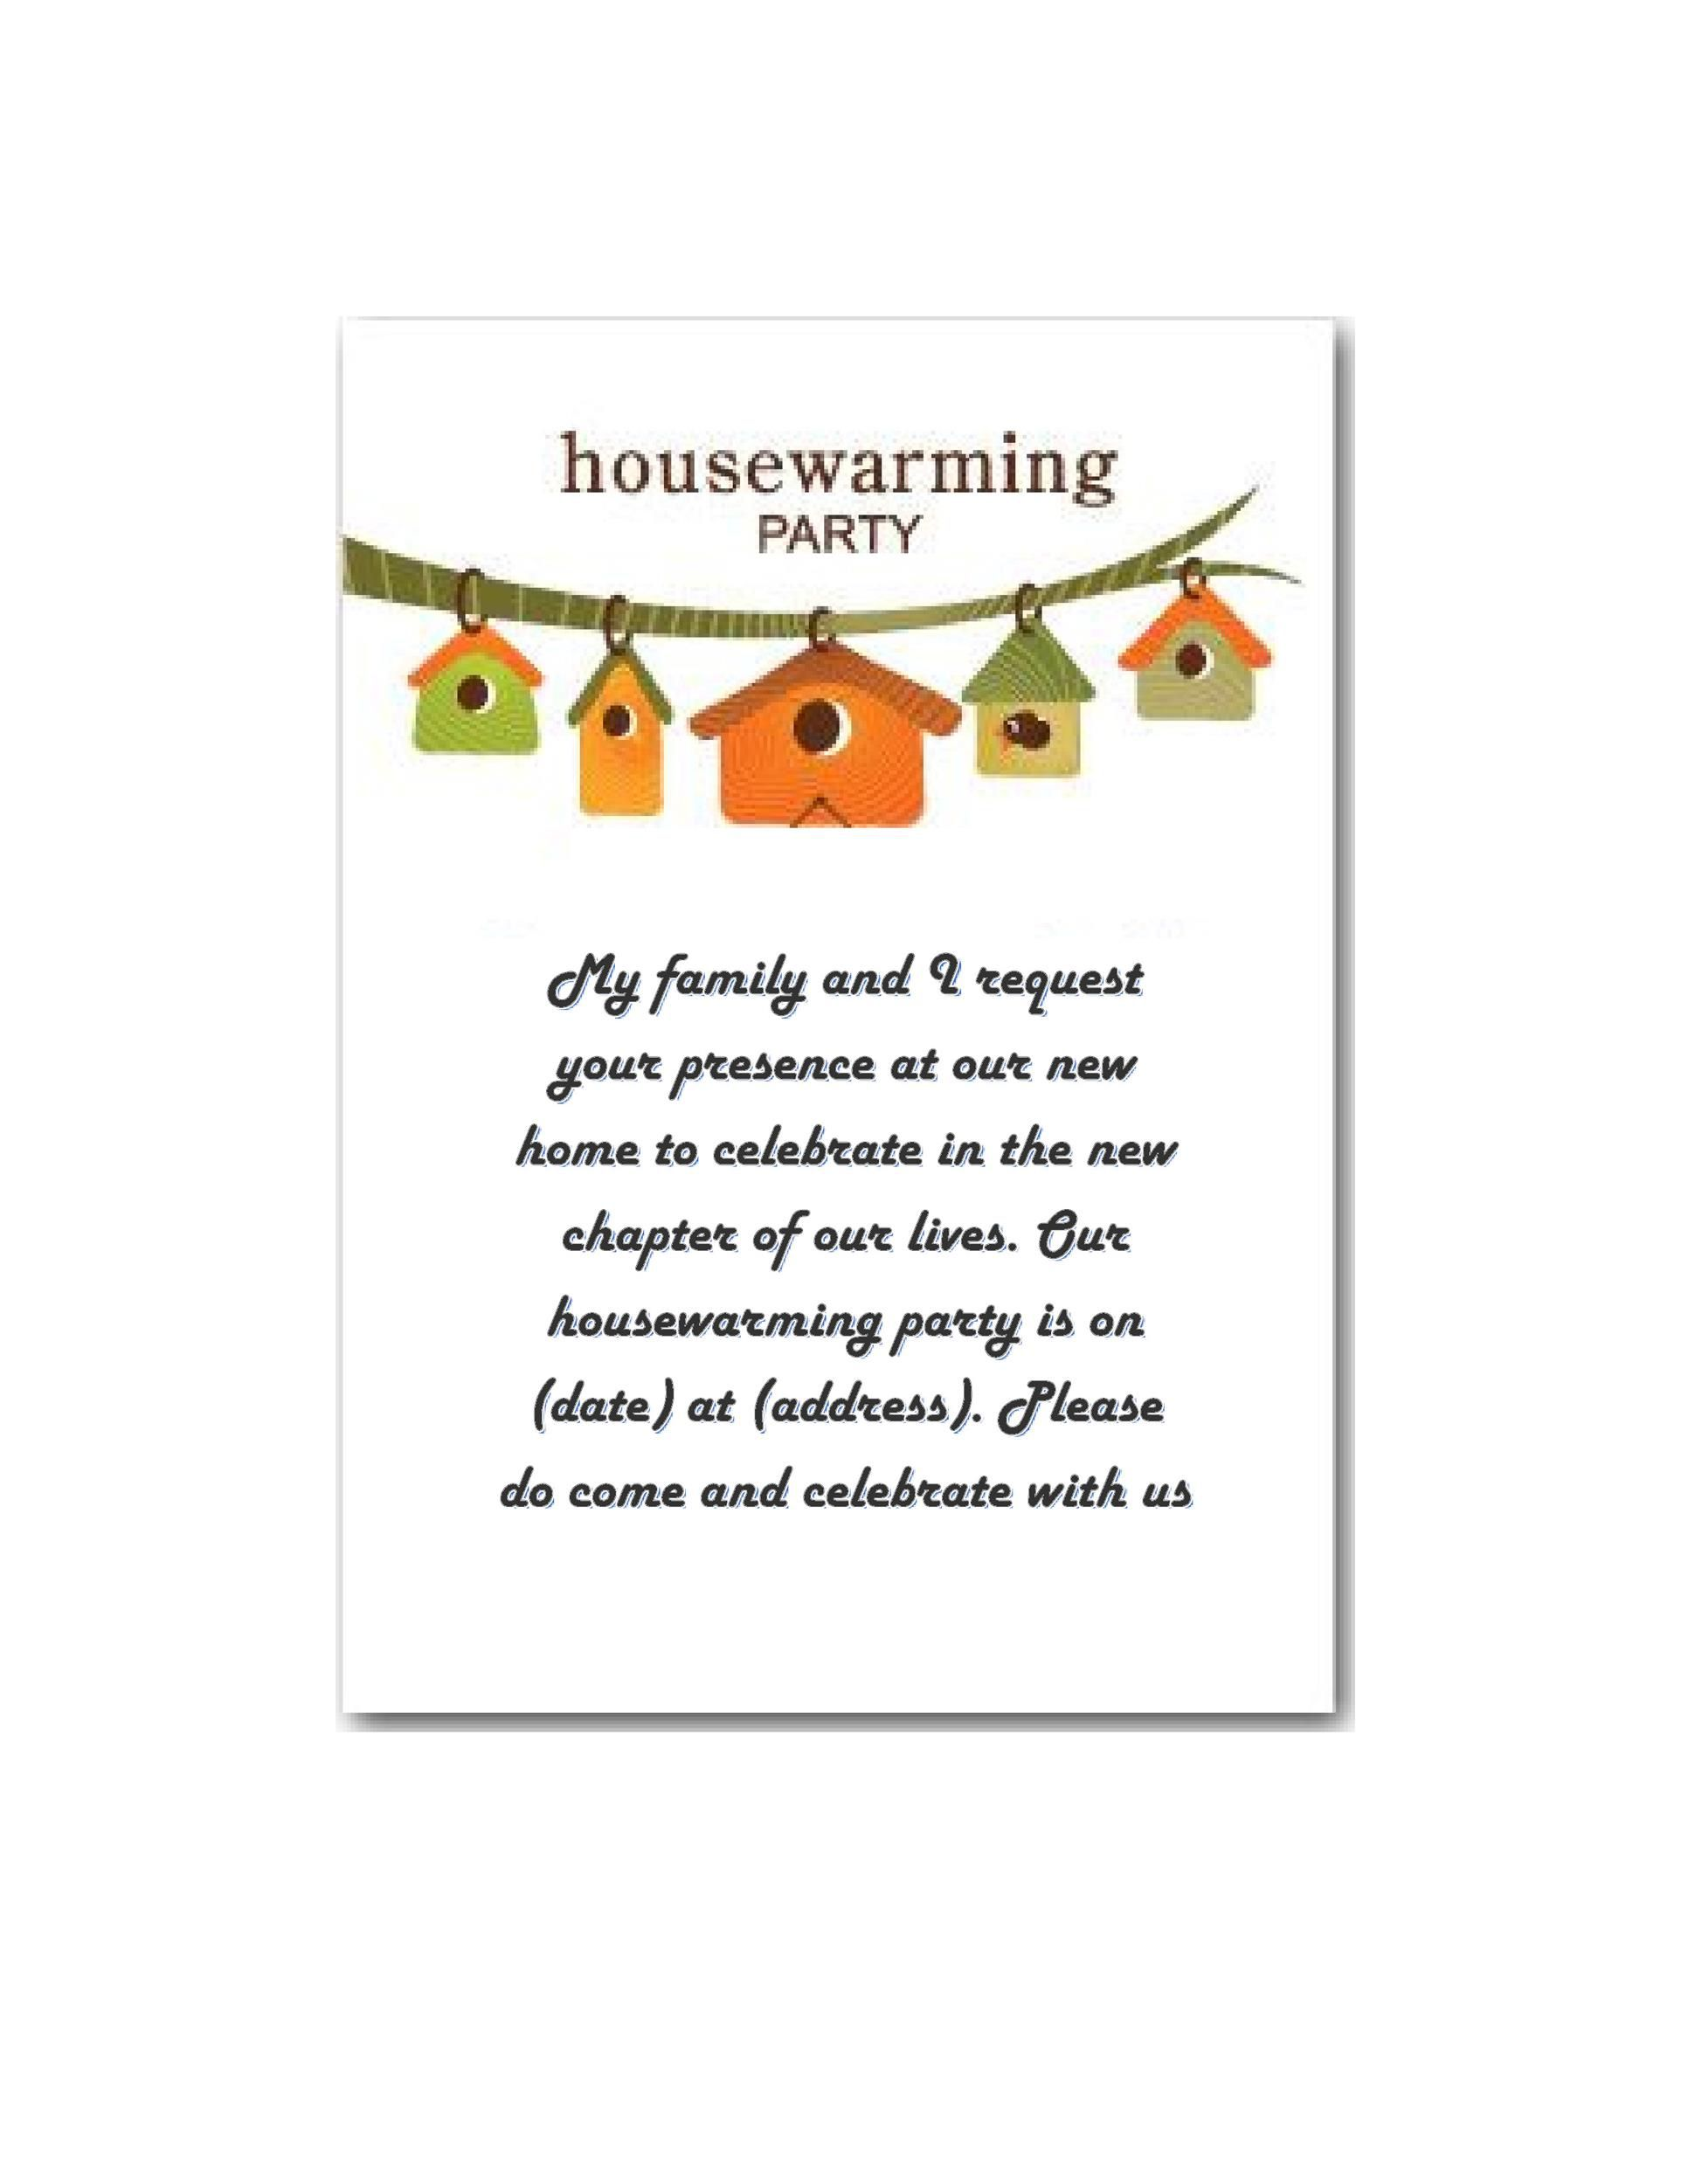 007 Frightening Housewarming Party Invitation Template Sample  Templates Free Download CardFull